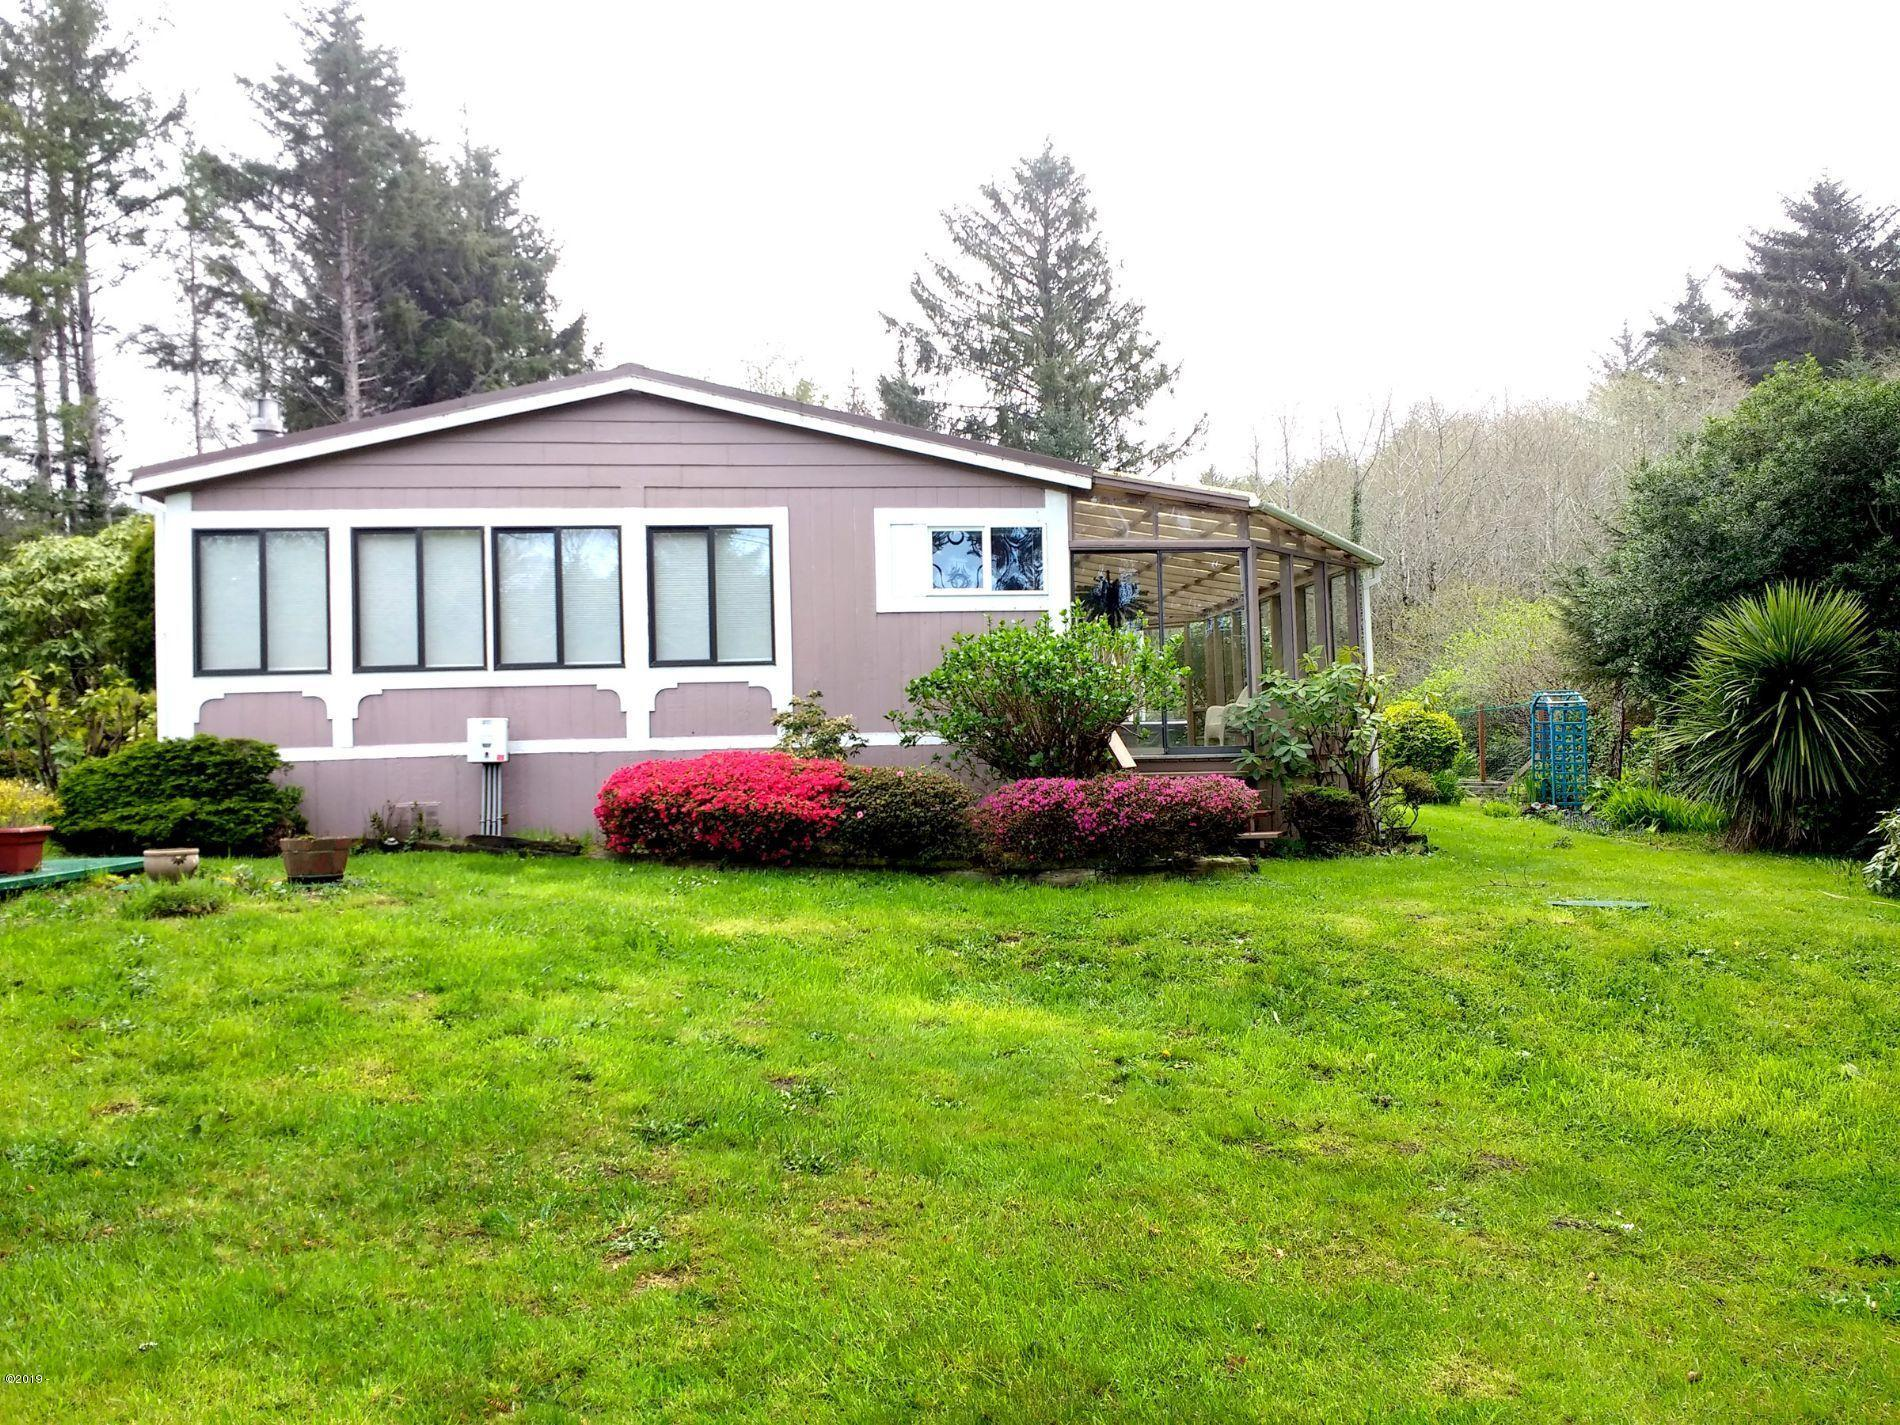 54 NE Starr Creek Dr, Yachats, OR 97498 - front